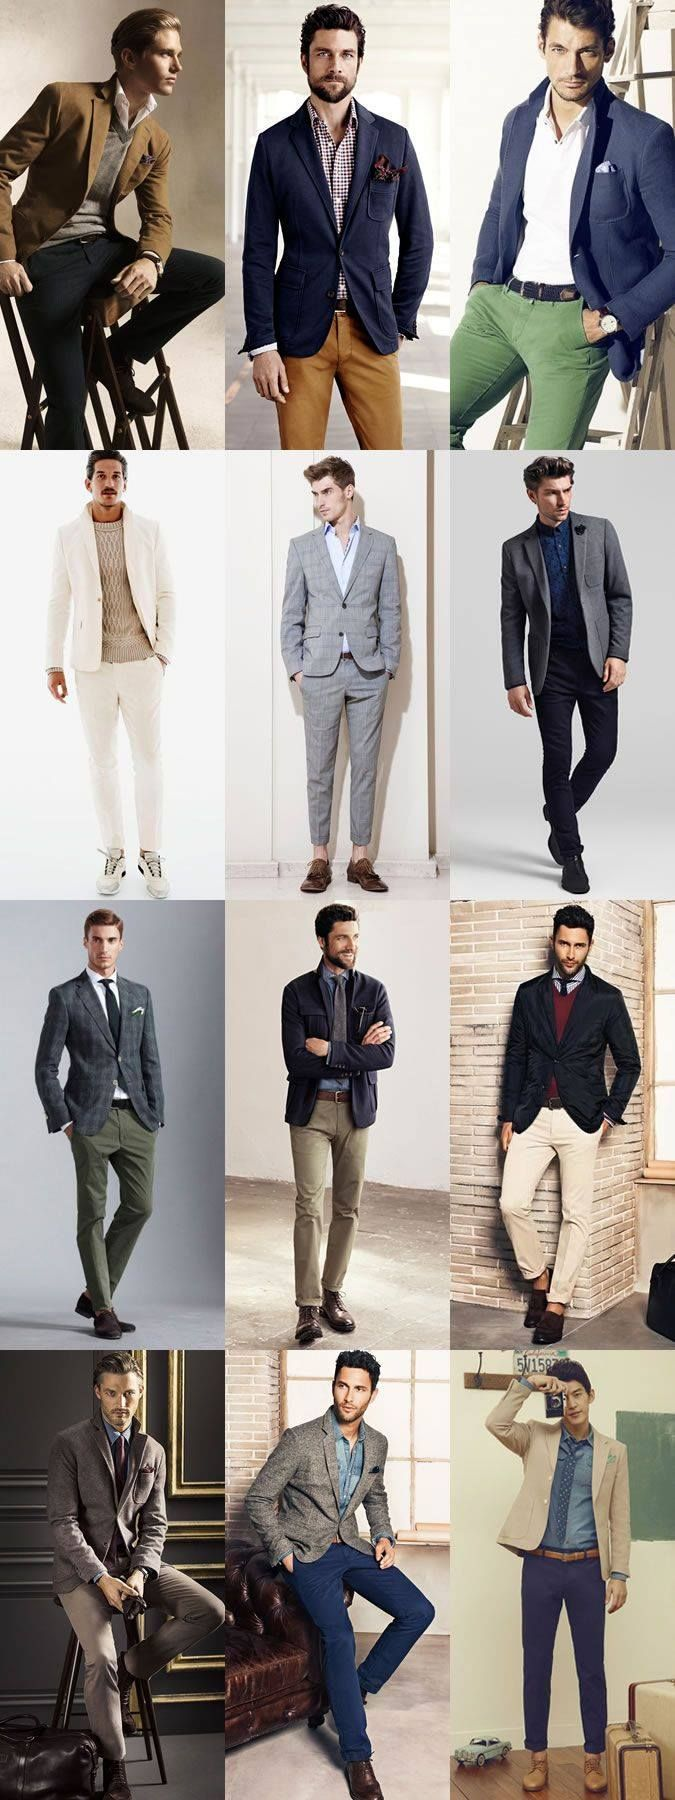 best ideas about interview outfit men mens style interview attire smart casual combinations outfits lookbook